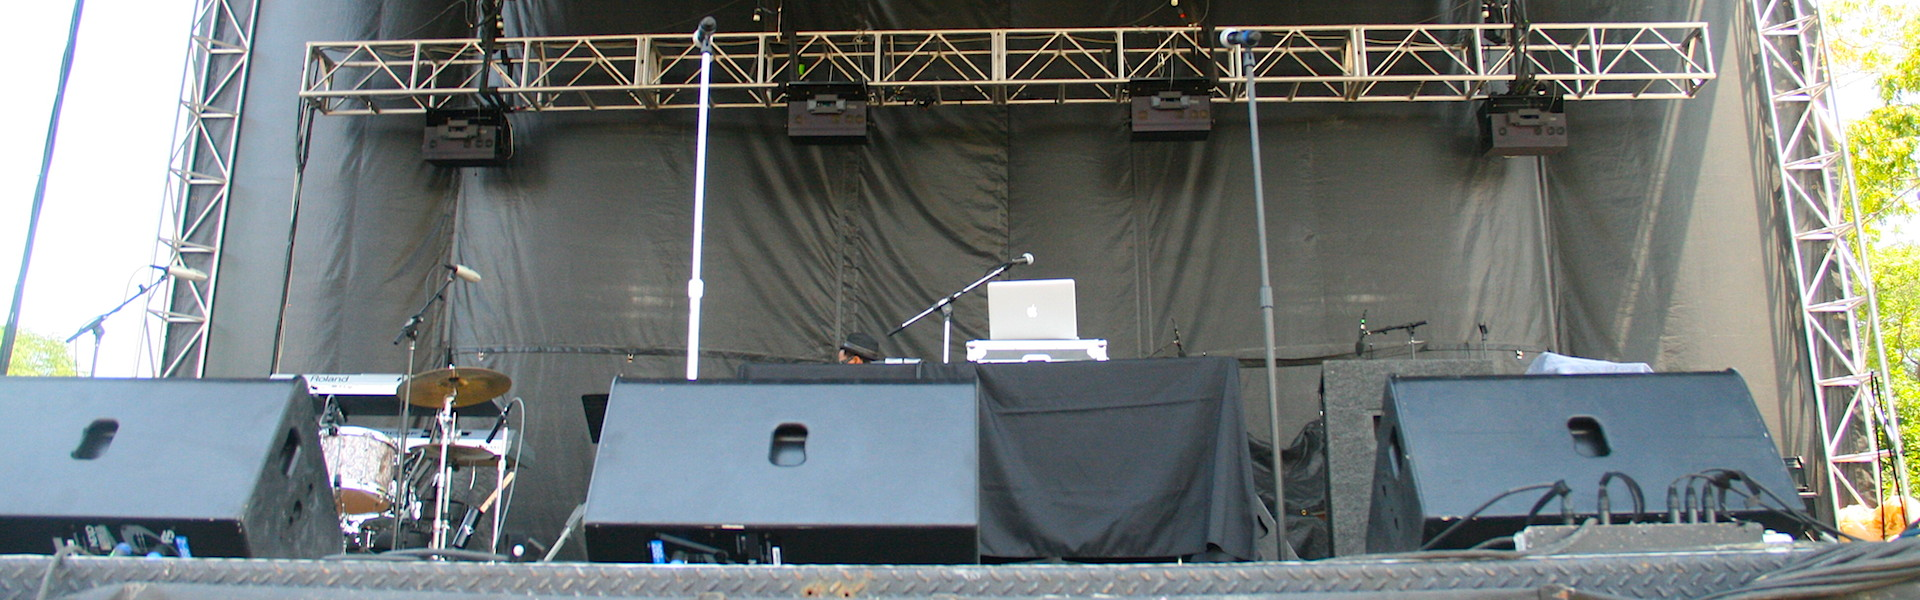 Stage wheelchair access with a portable wheelchair lift